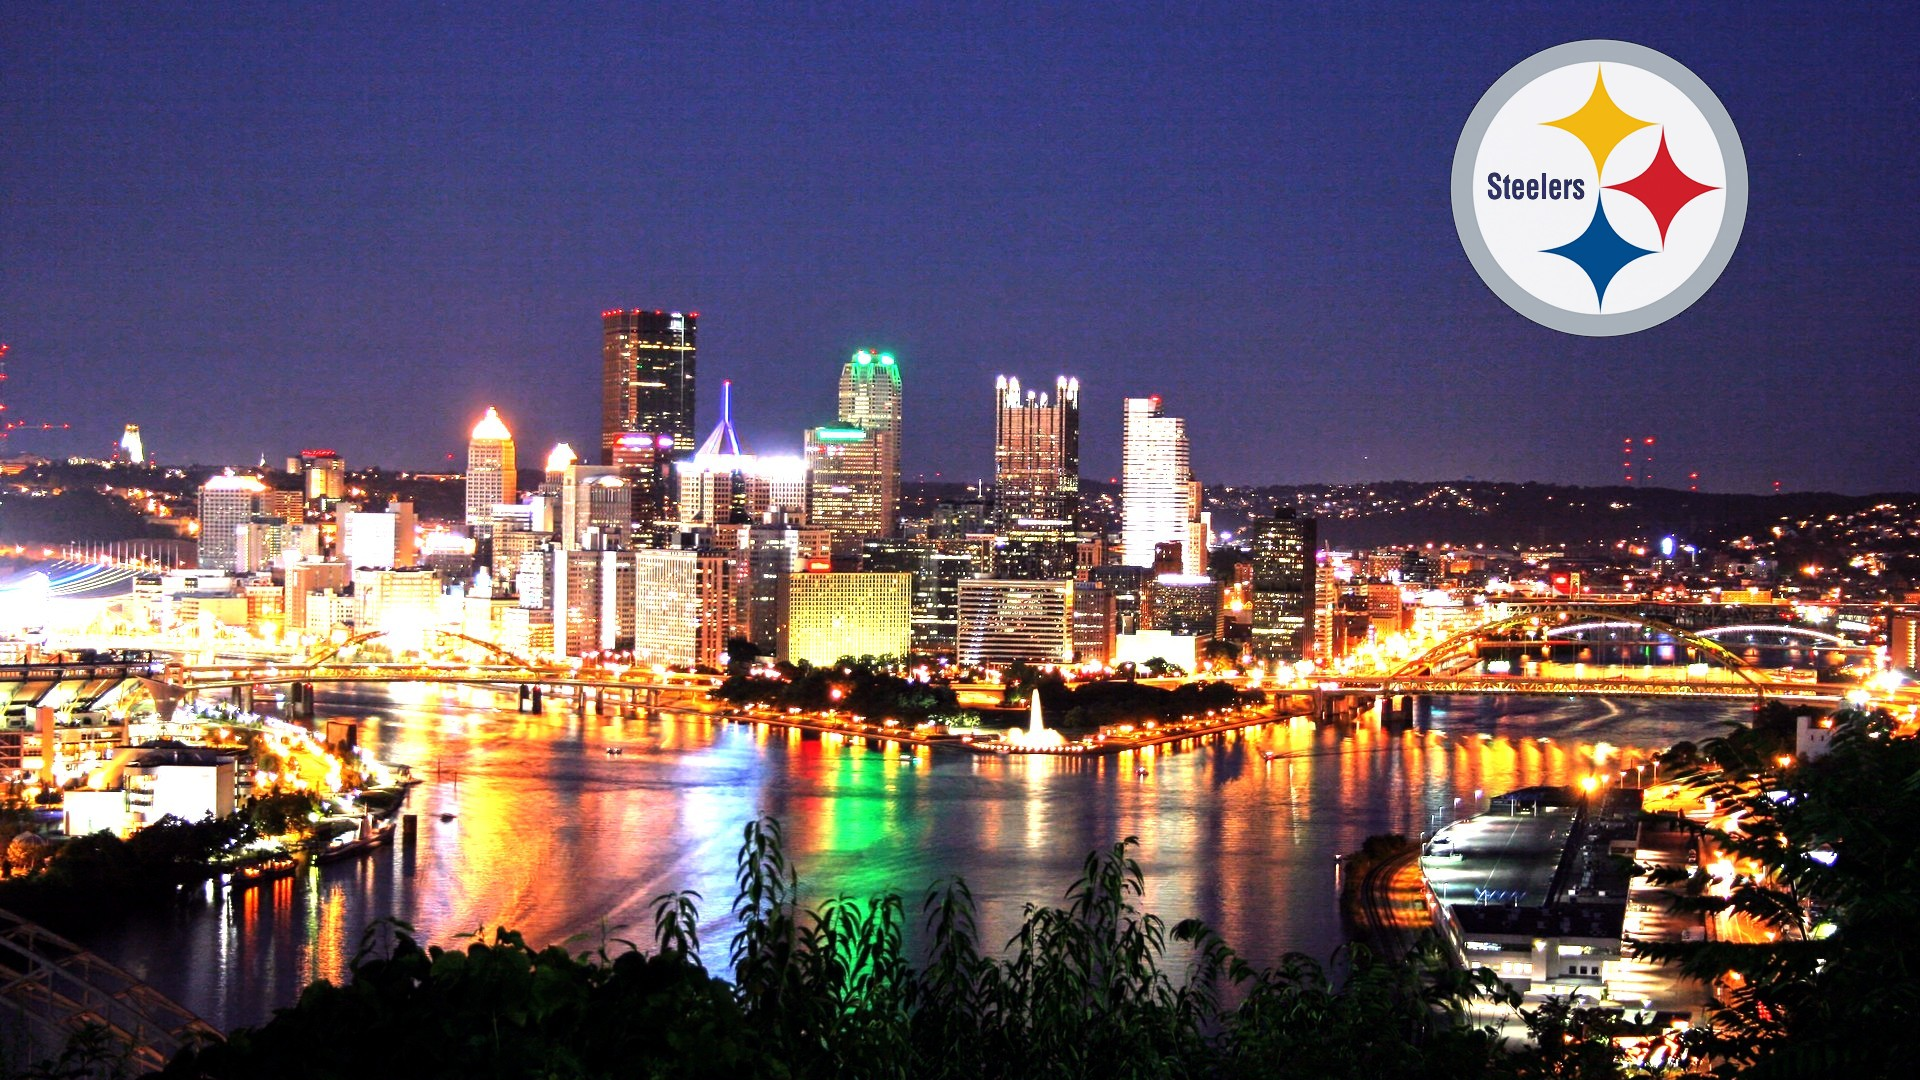 Images pittsburgh steelers wallpaper page 2 1920x1080